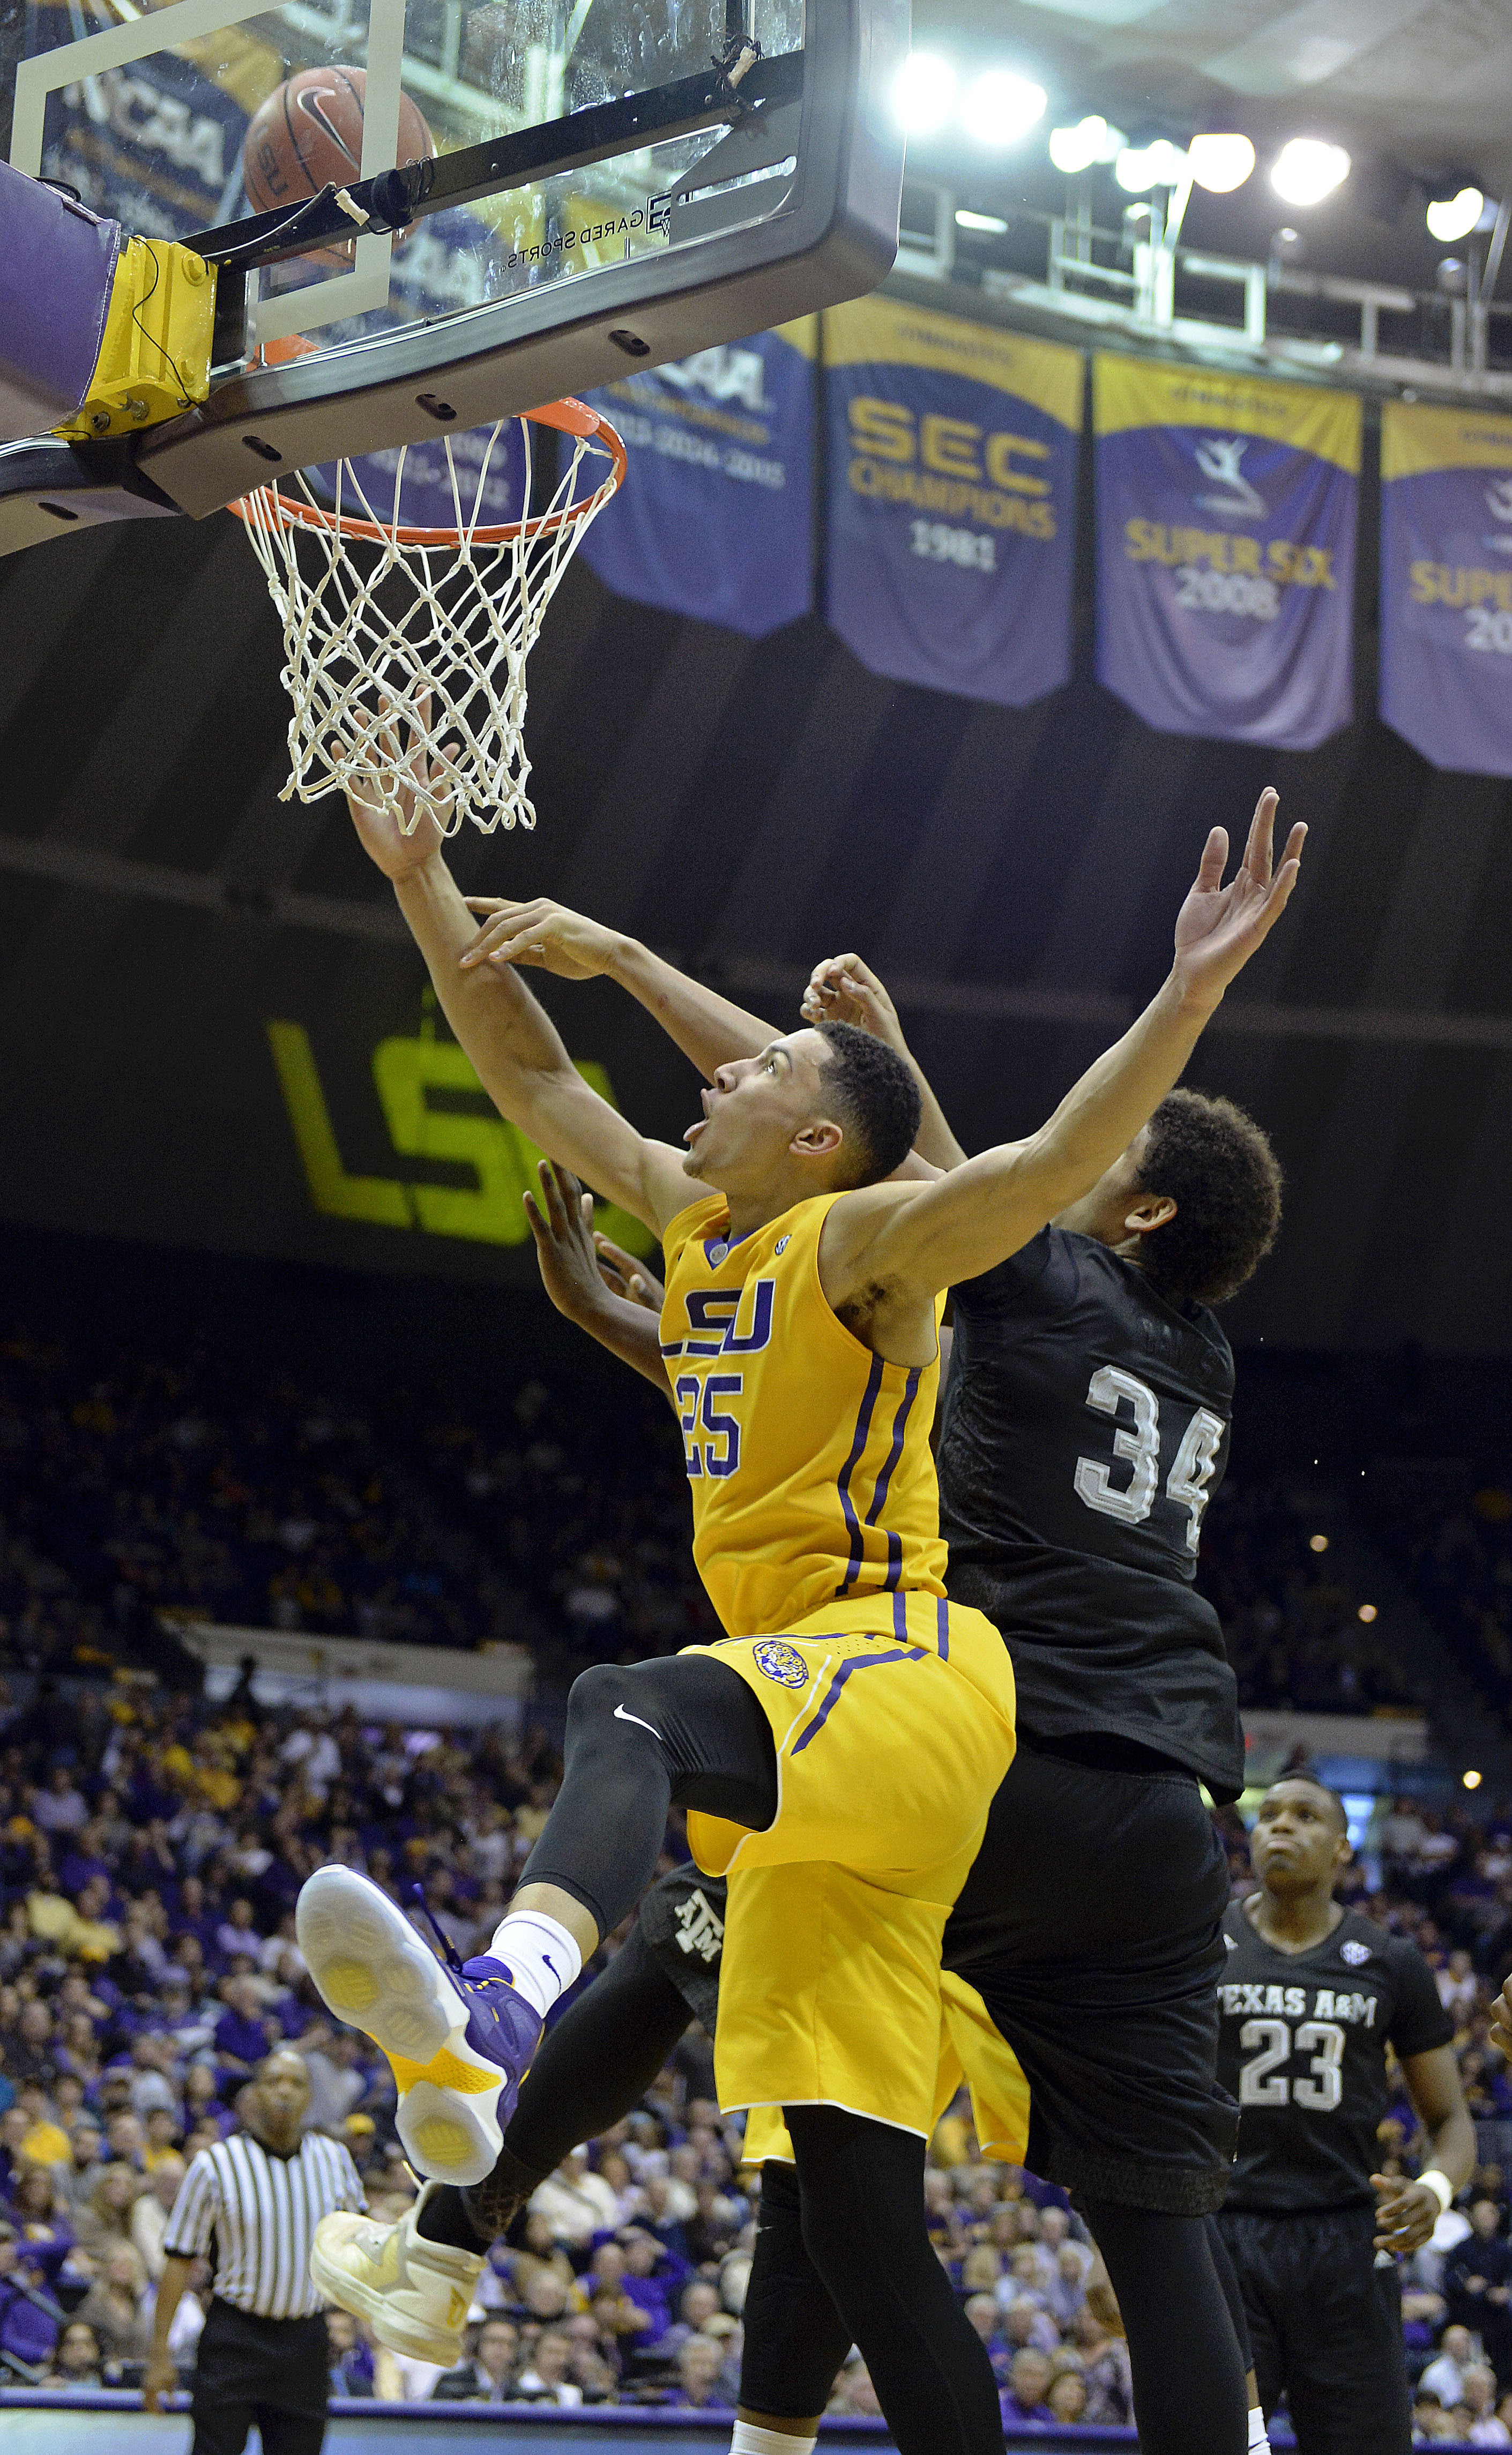 FILE - In this Feb. 13, 2016, file photo, LSU forward Ben Simmons (25) shoots as Texas A&M center Tyler Davis (34) defends iduring the first half of an NCAA college basketball game in Baton Rouge, La. Simmons was a preseason freshman all-American as a pot